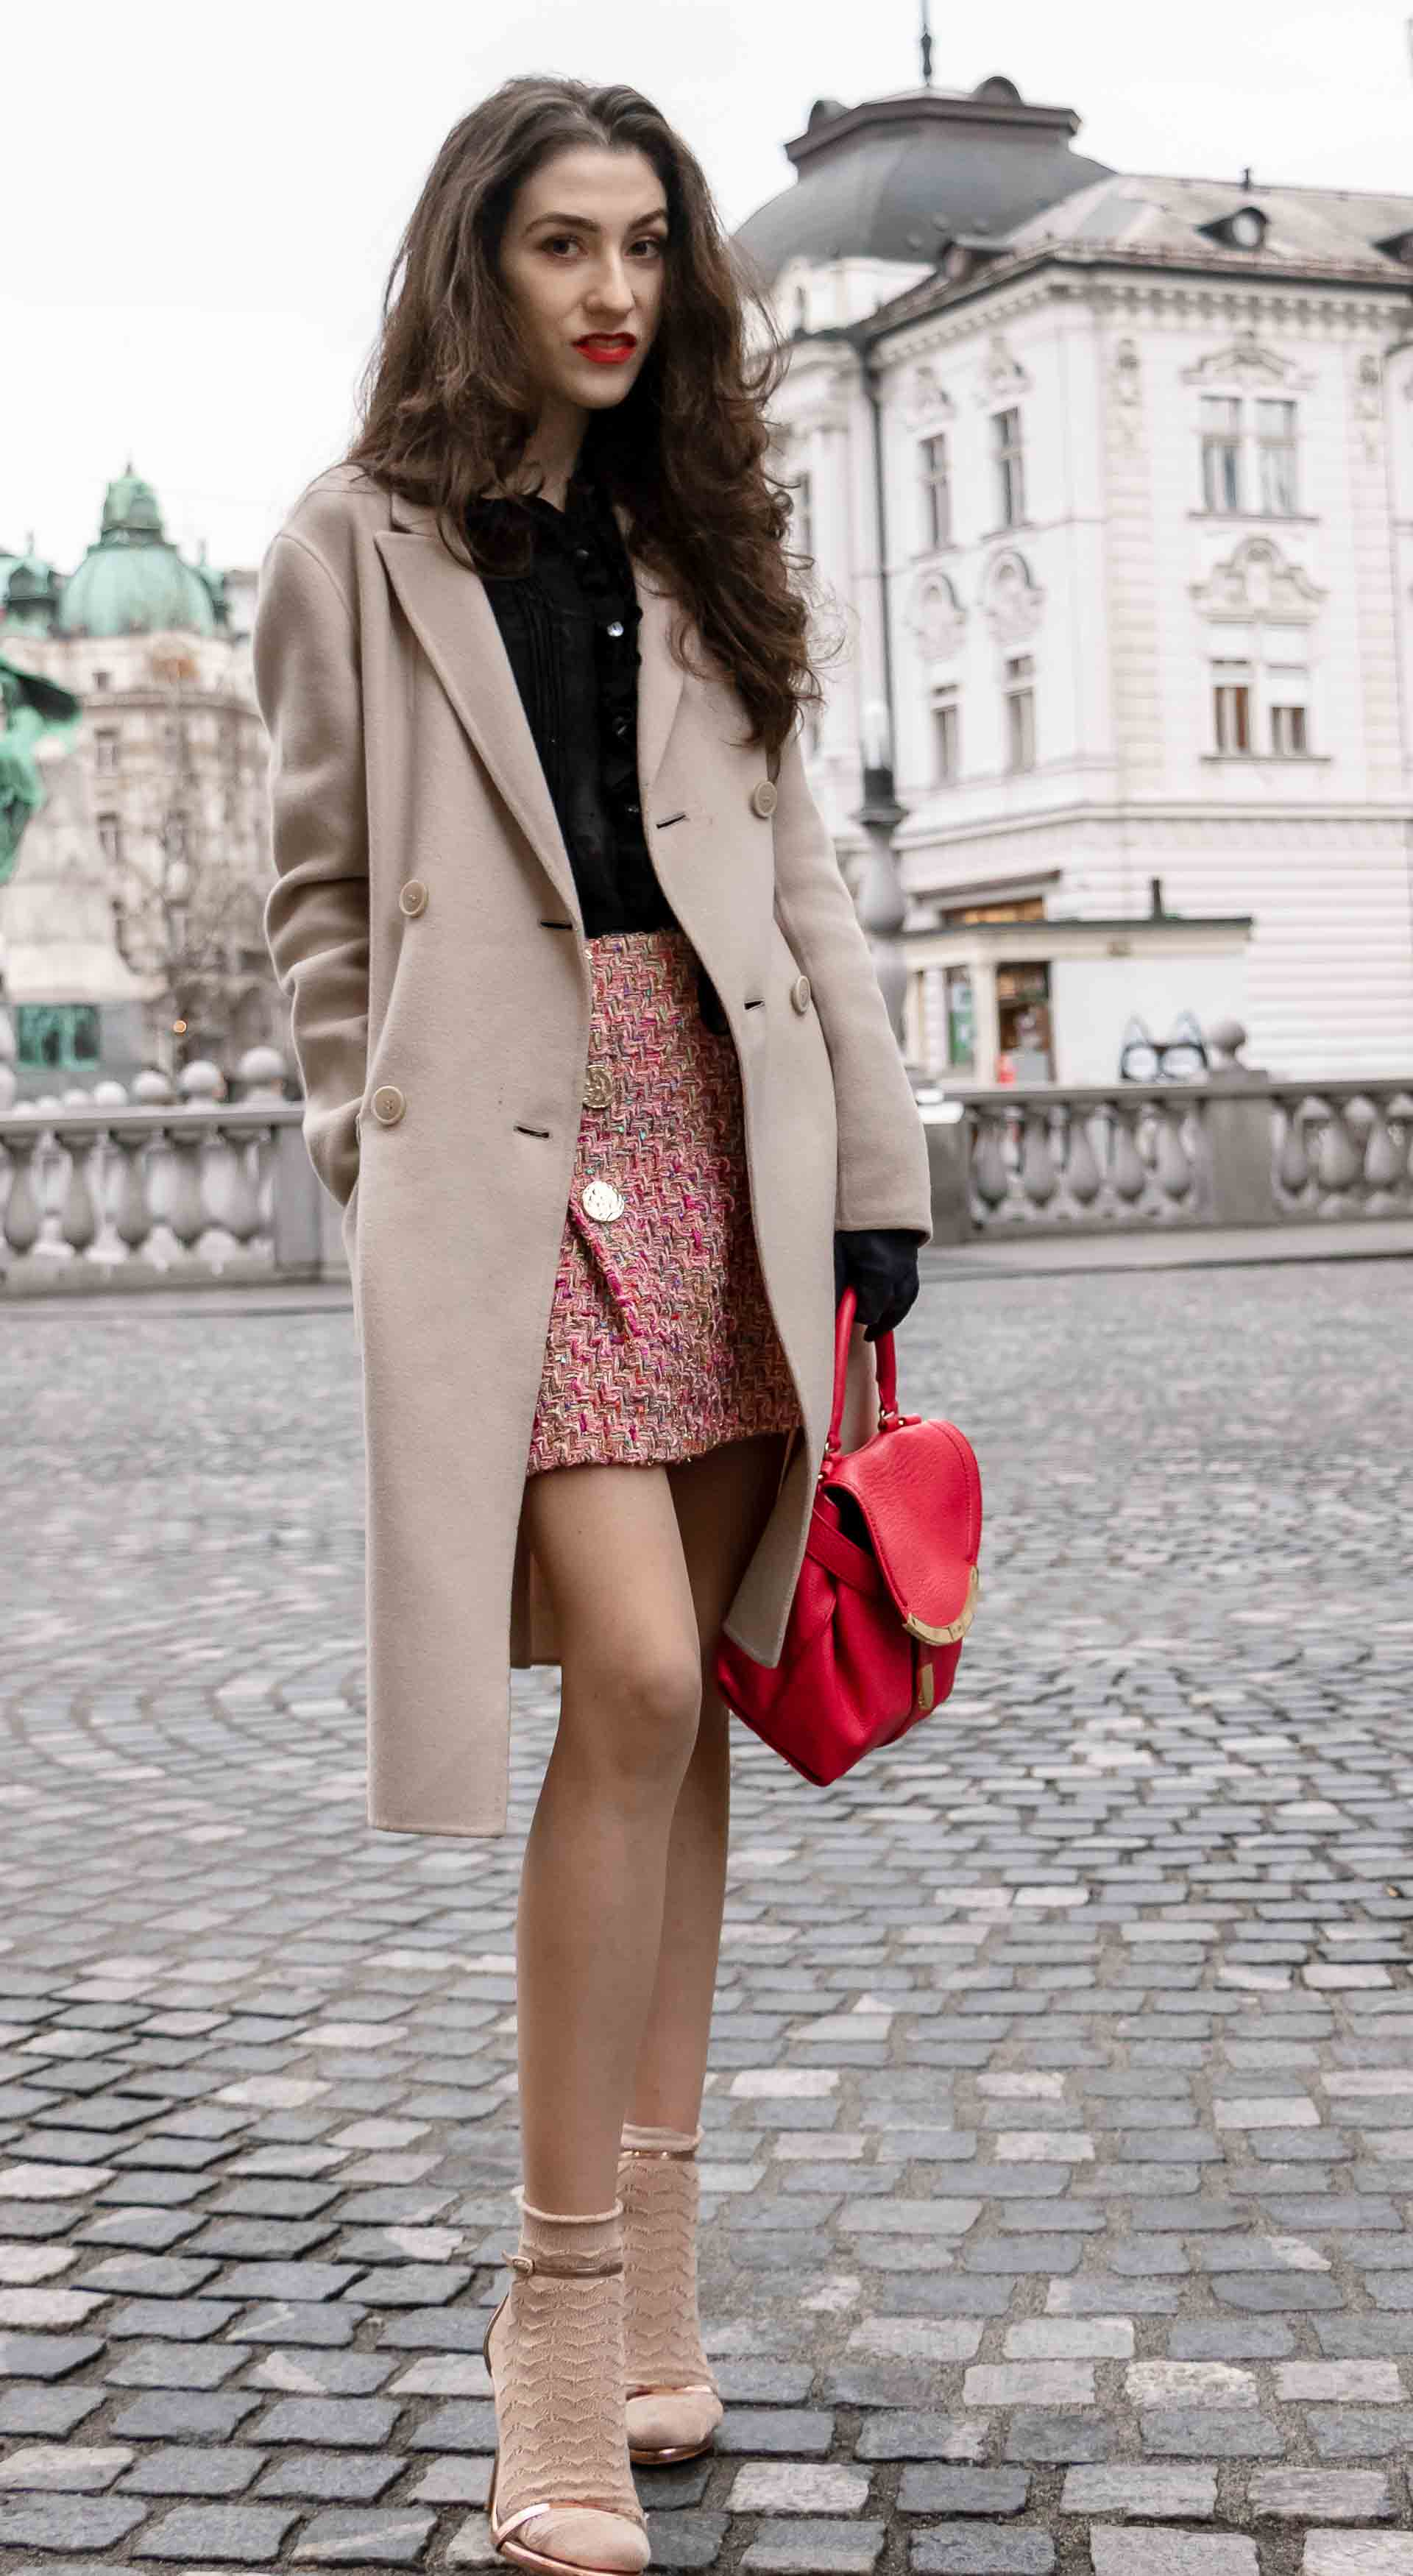 Fashion Blogger Veronika Lipar of Brunette from Wall Street wearing bronze socks and high shine rose gold Songnudist sandals from Stuart Weitzman, tweed Storets mini skirt, black blouse, off white Weekend Maxmara coat while on the street in Ljubljana